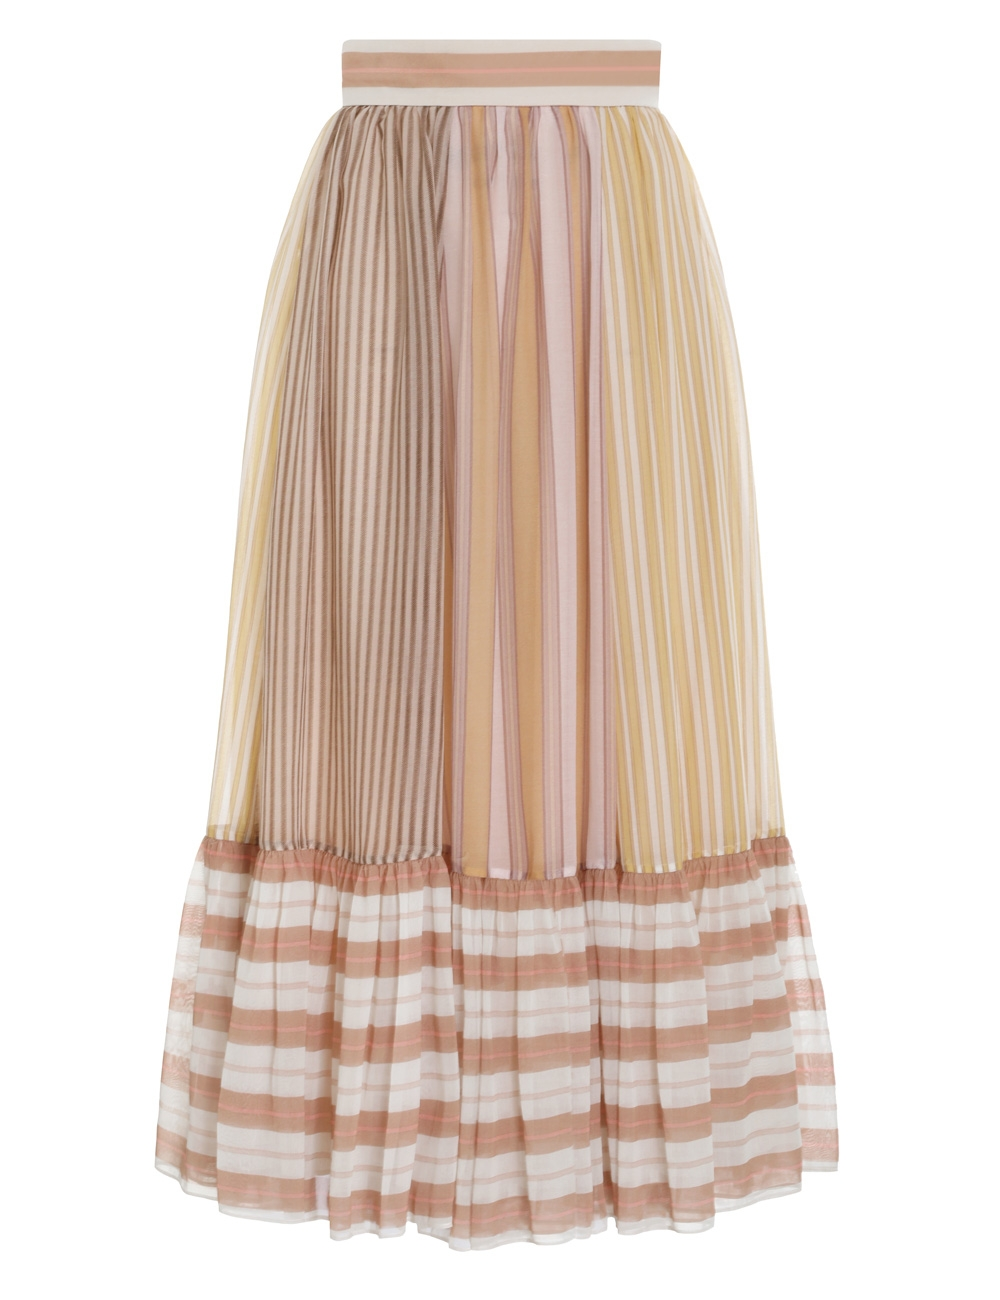 Candescent Striped Skirt